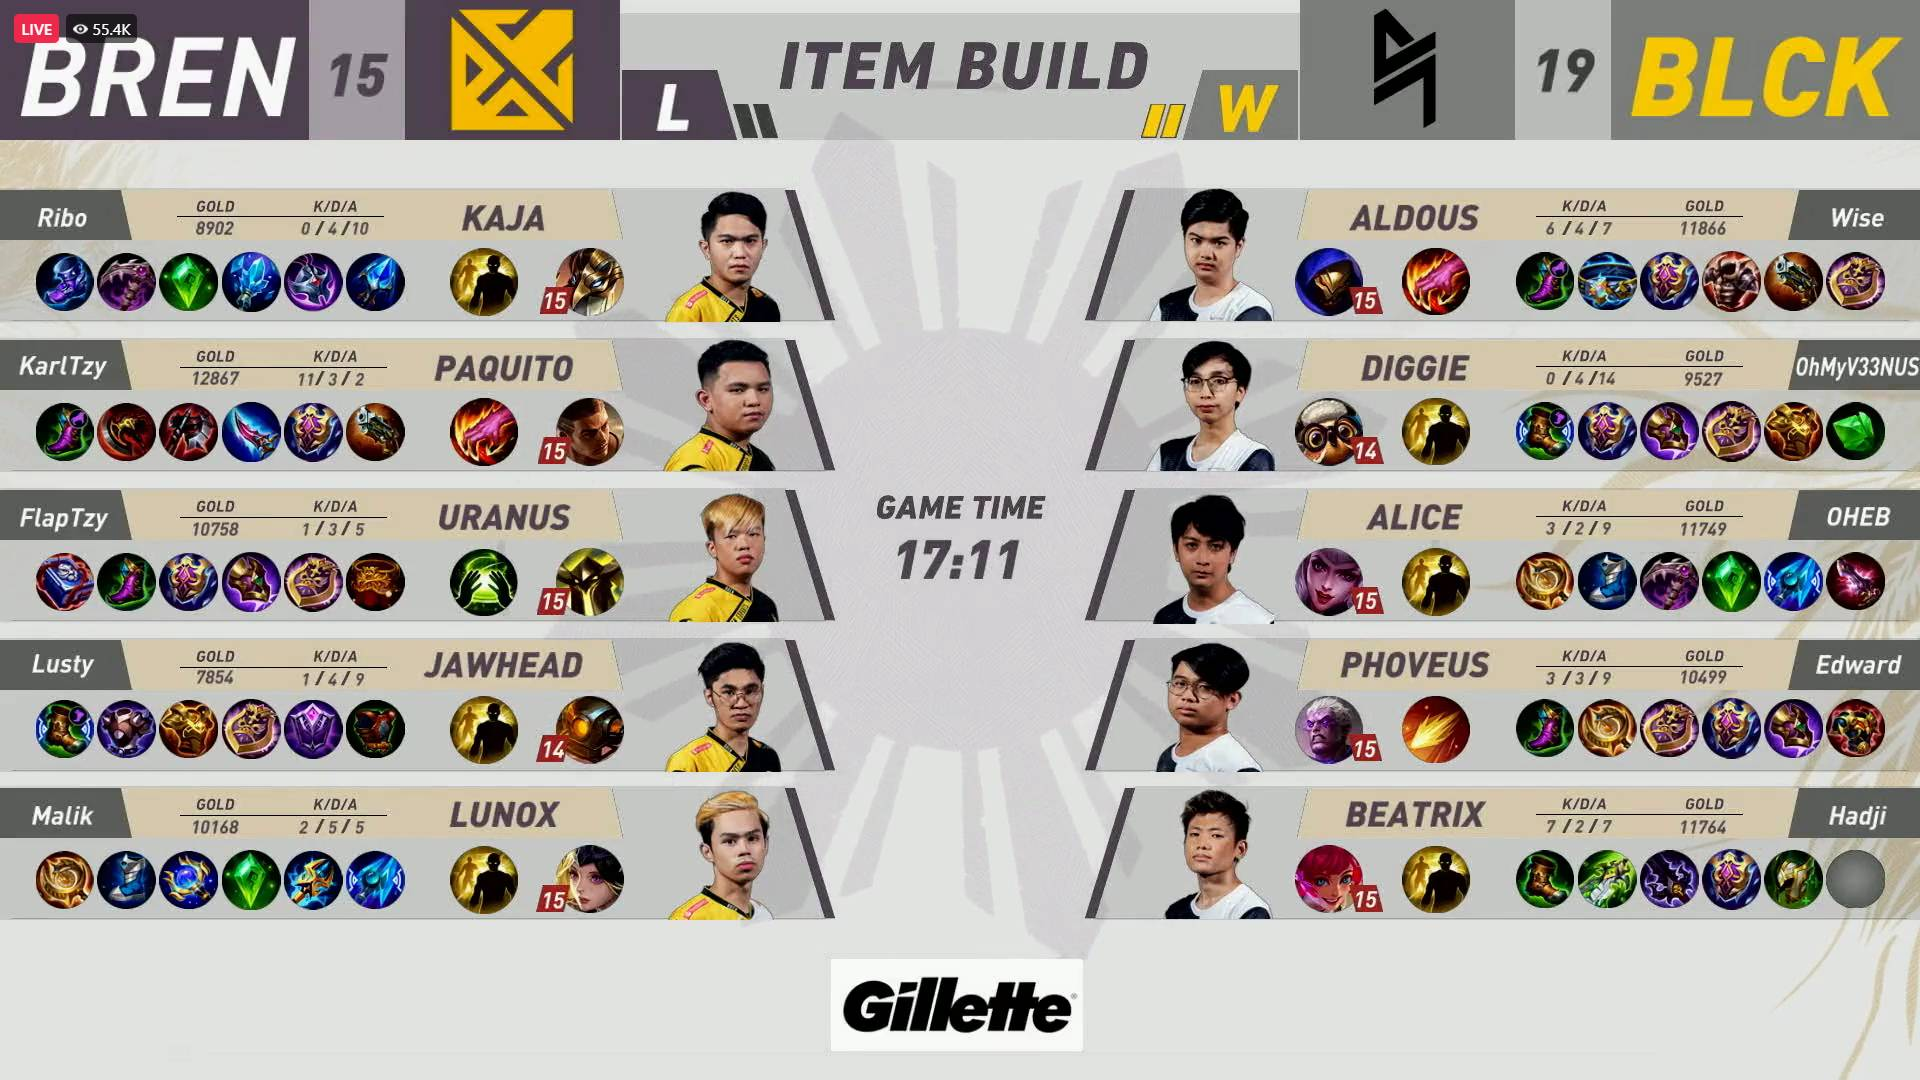 MPL-PH-8-Blacklist-def-Bren-Game-2 Blacklist weathers KarlTzy's Paquito to remain unscathed in MPL PH ESports Mobile Legends MPL-PH News  - philippine sports news